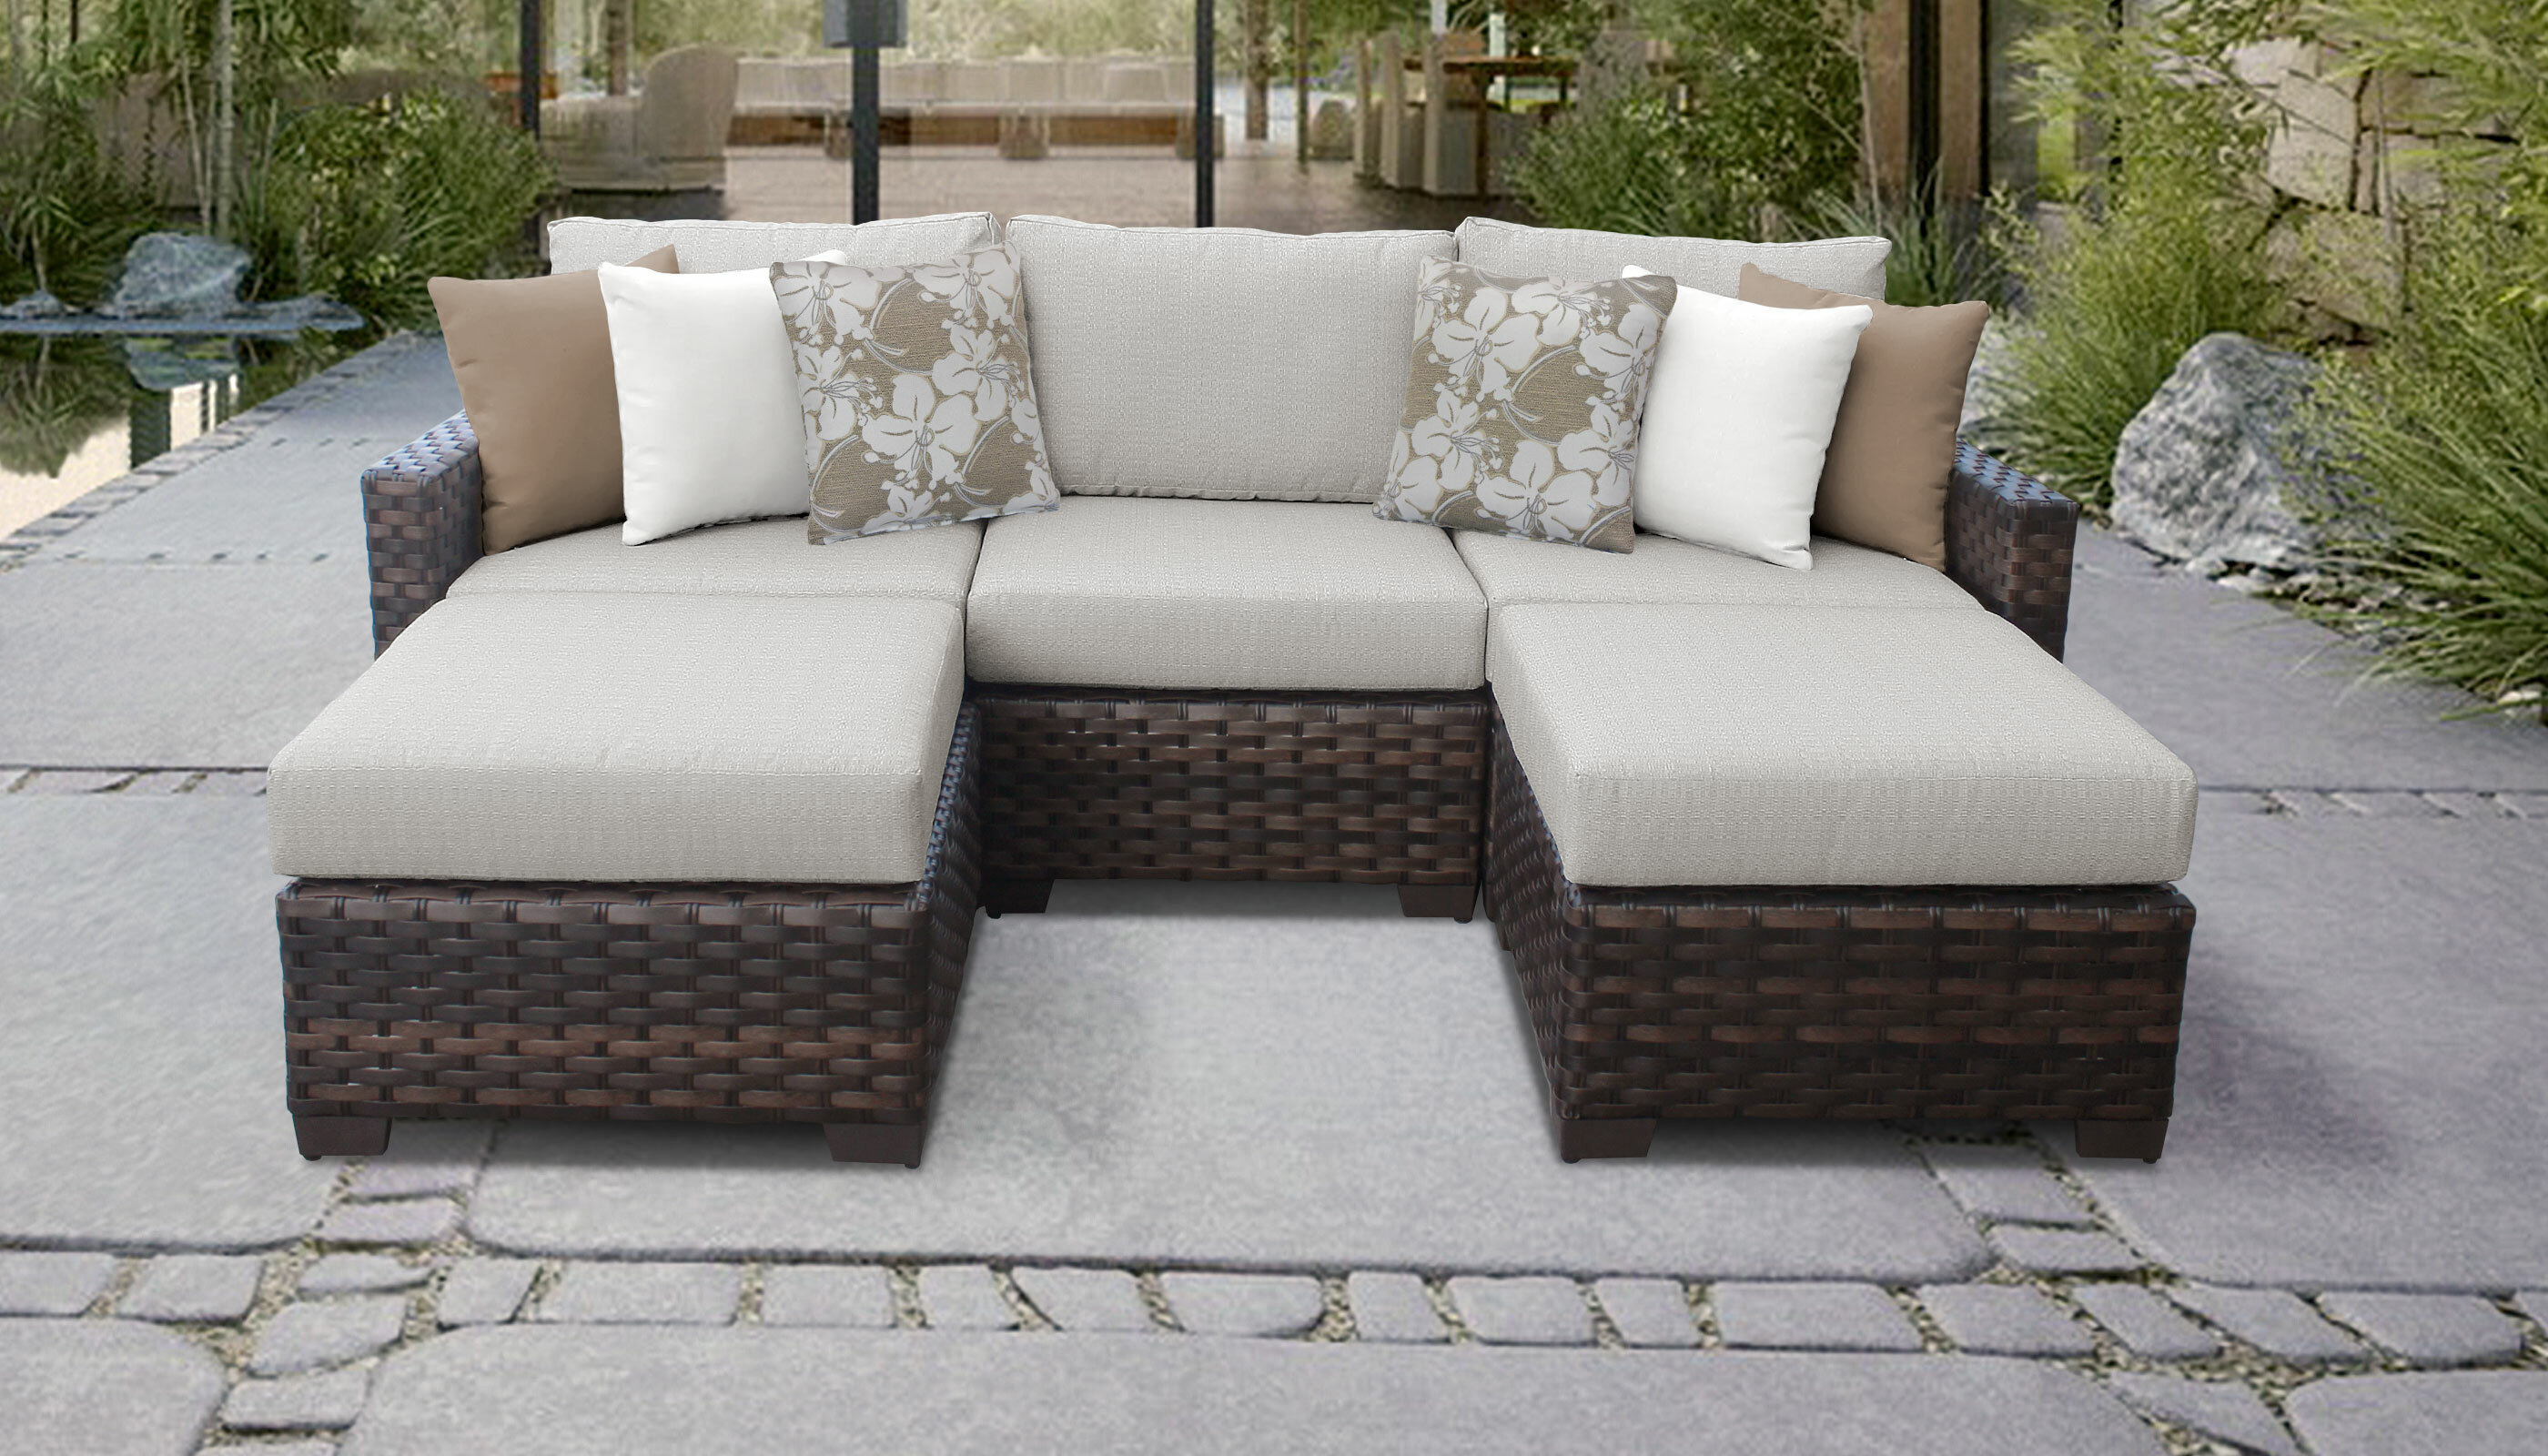 Wayfair & Kathy Ireland Homes \u0026 Gardens River Brook Wicker Patio Sectional with Cushions